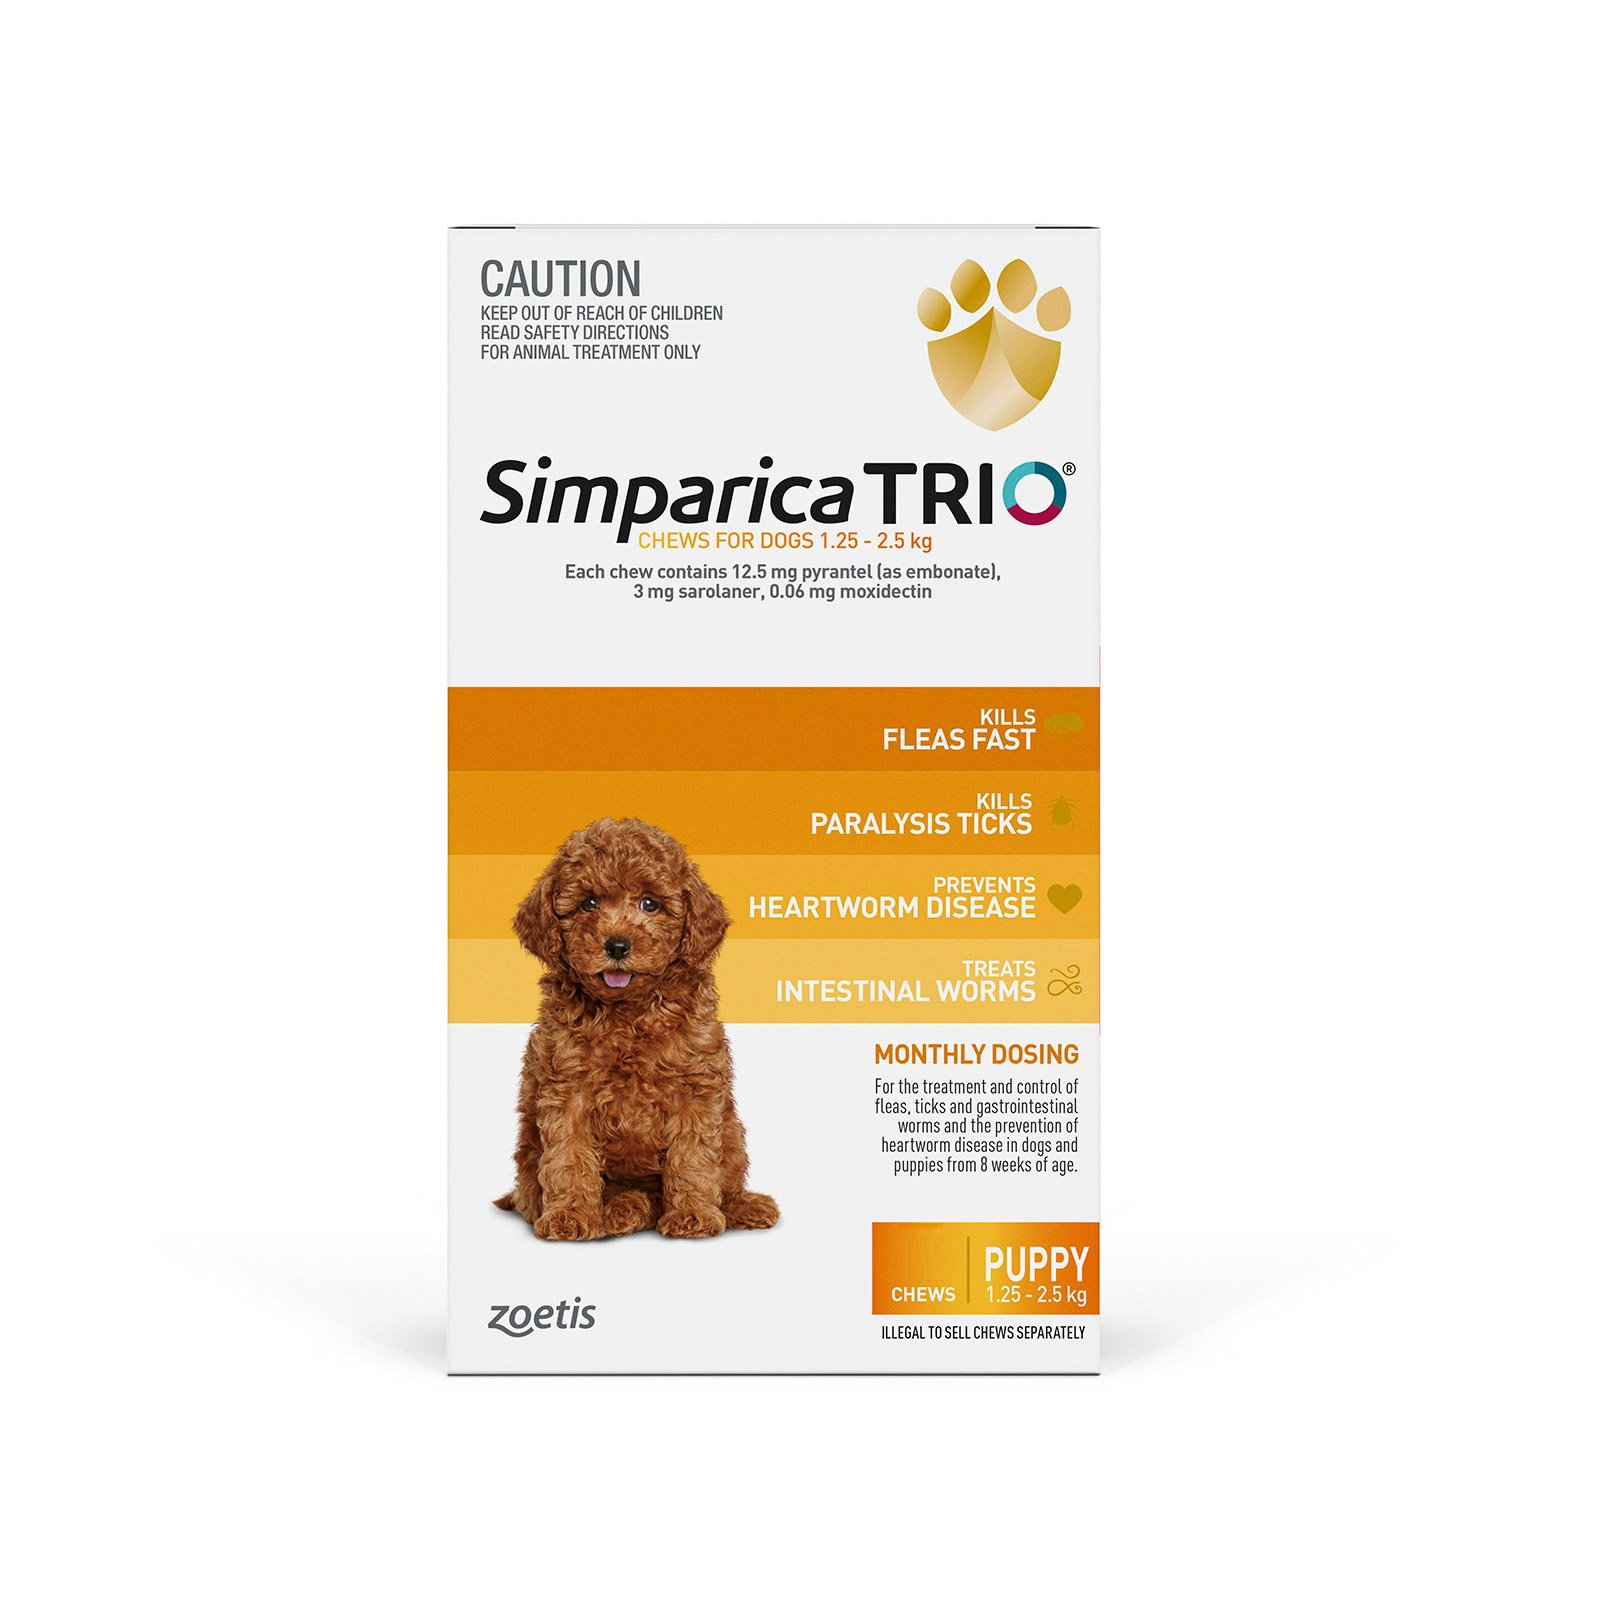 Simparica-trio-chew-for-puppy-dogs1.25-2.5kg-yellow.jpg